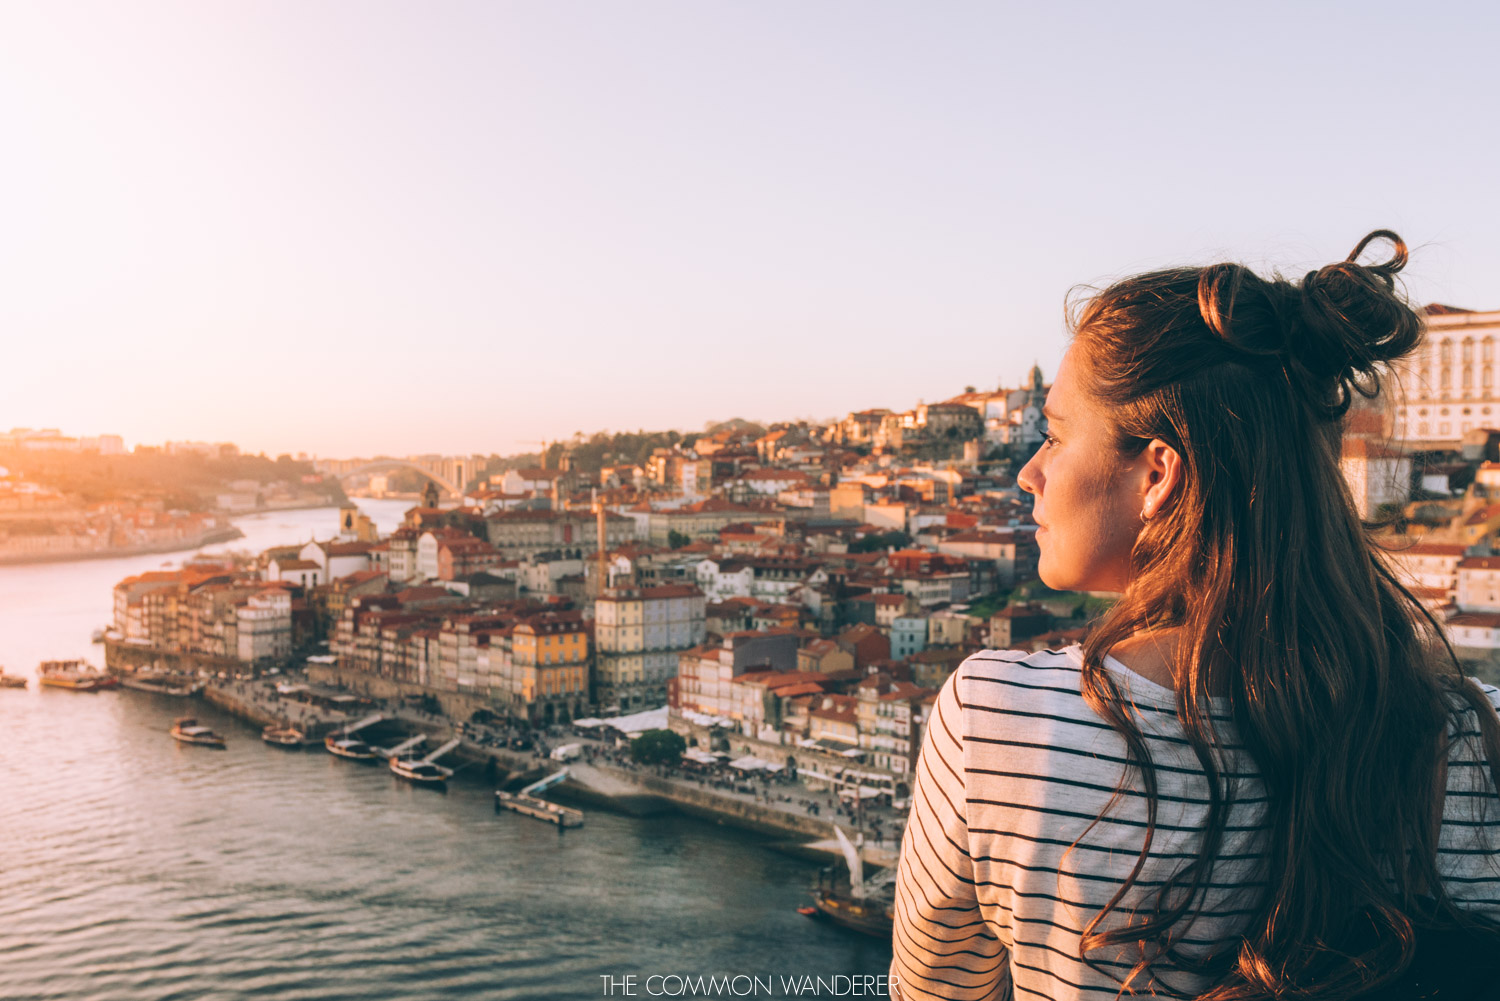 Looking out from Dom Luis I Bridge to the Ribeira district of Porto Portugal - Porto photo diary. The Common Wanderer | @thecommonwanderer